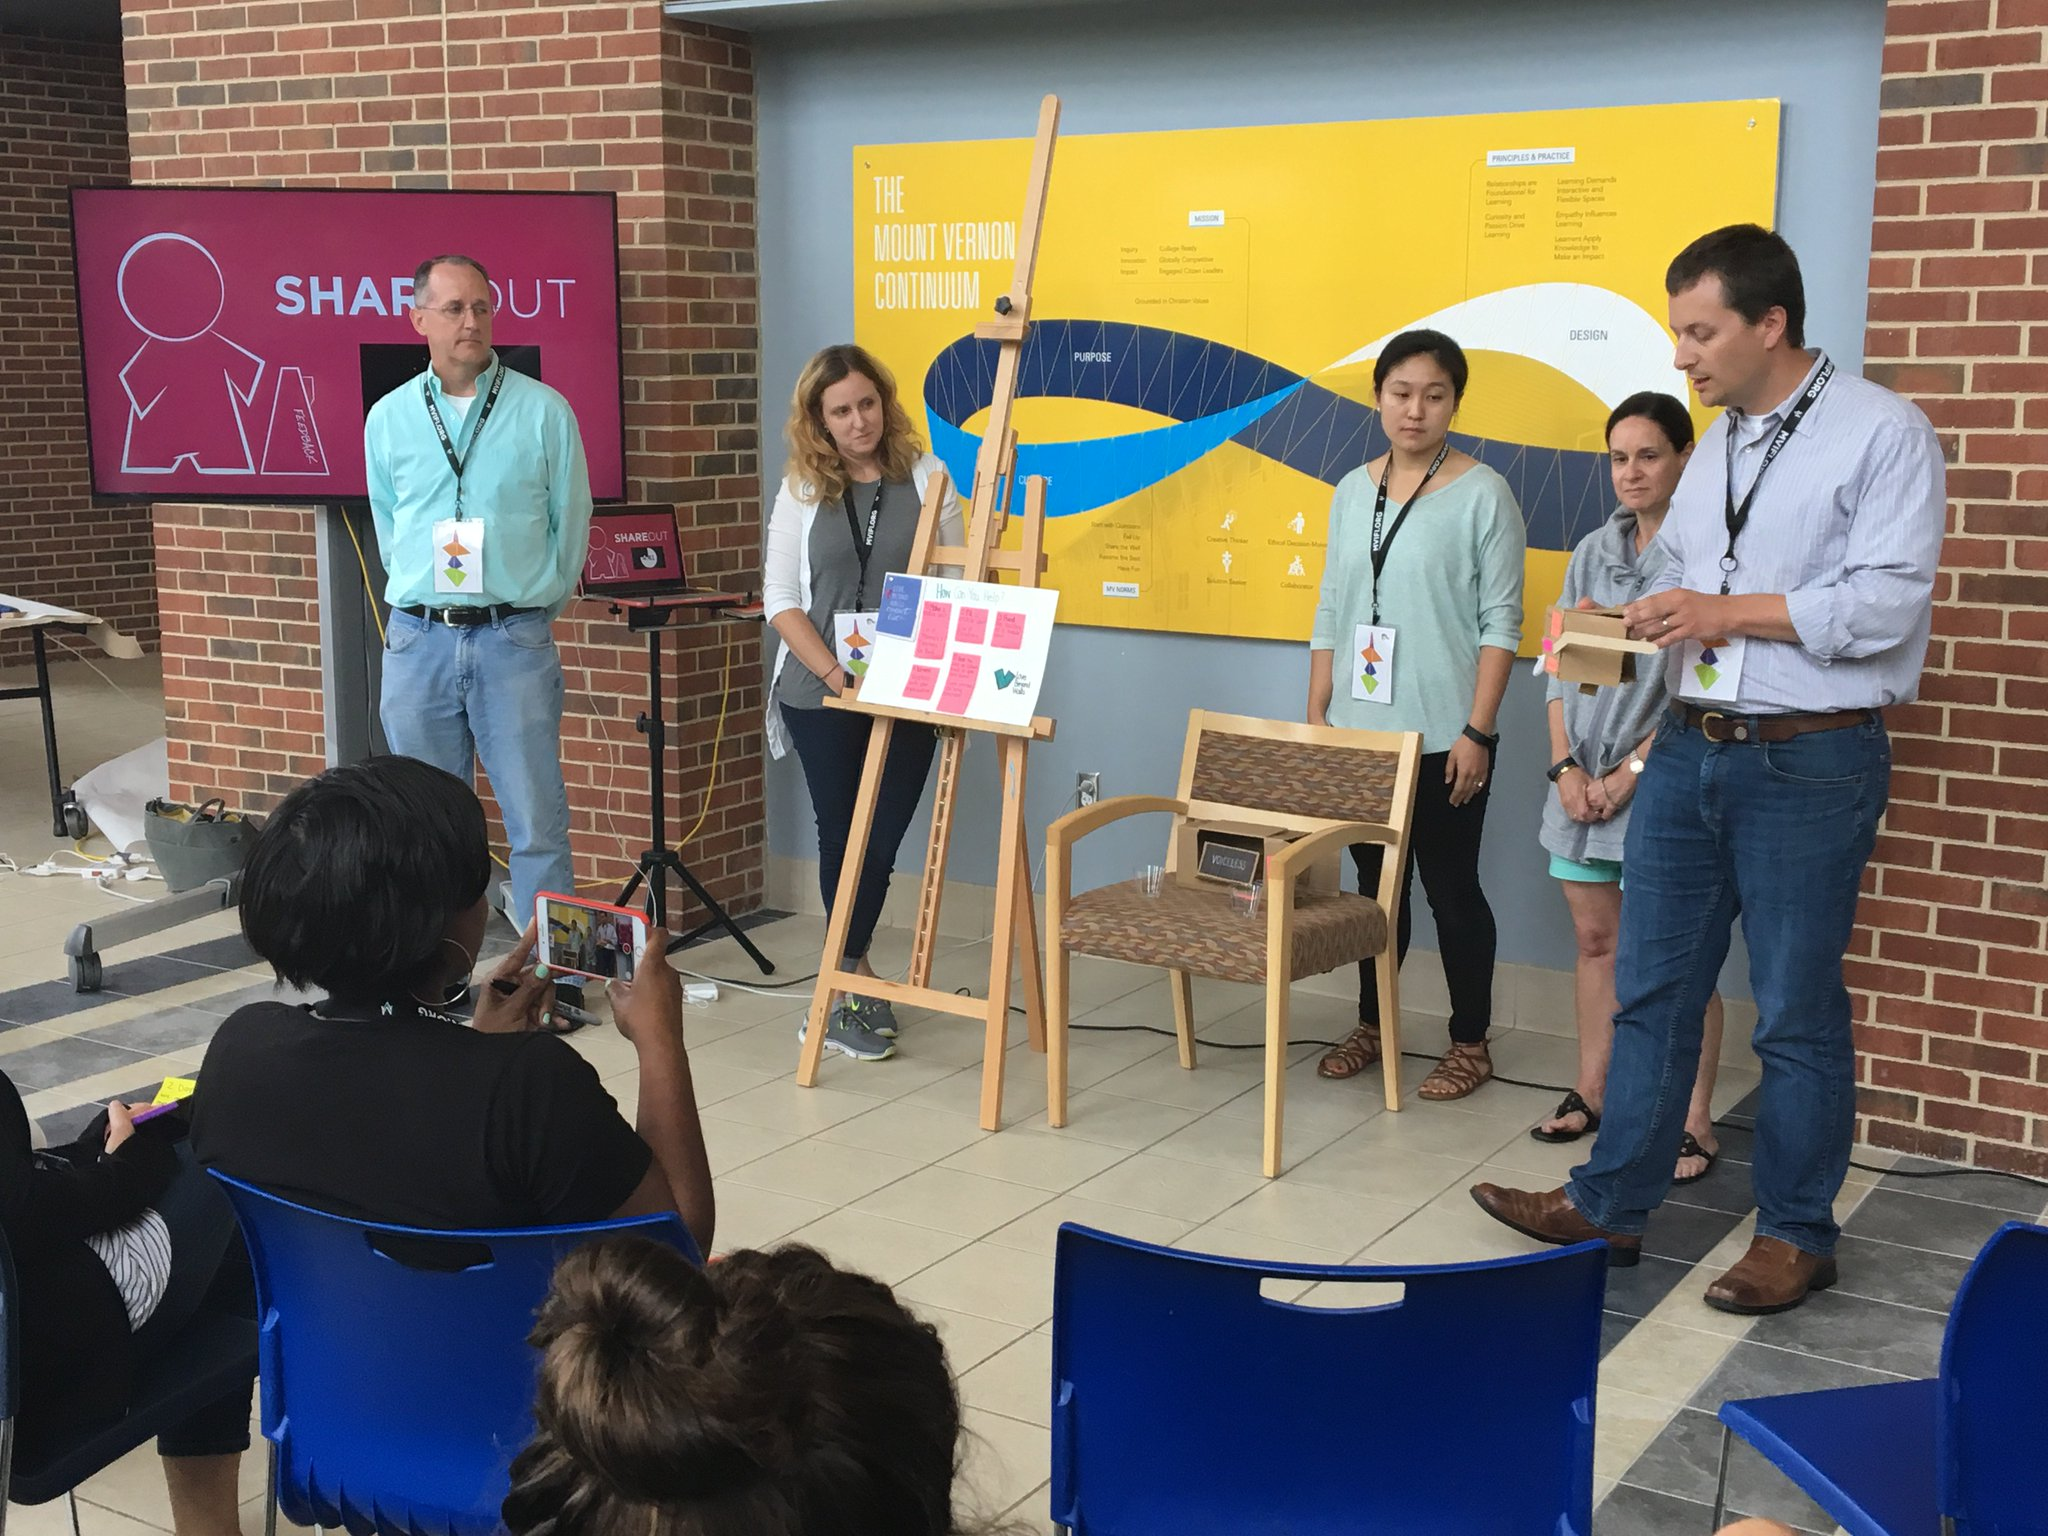 Designing a better world! #fuse17 participants pitch iterated prototypes to  @PlywoodPeople  partners to evaluate and consider implementing https://t.co/WcmvXJqUiY